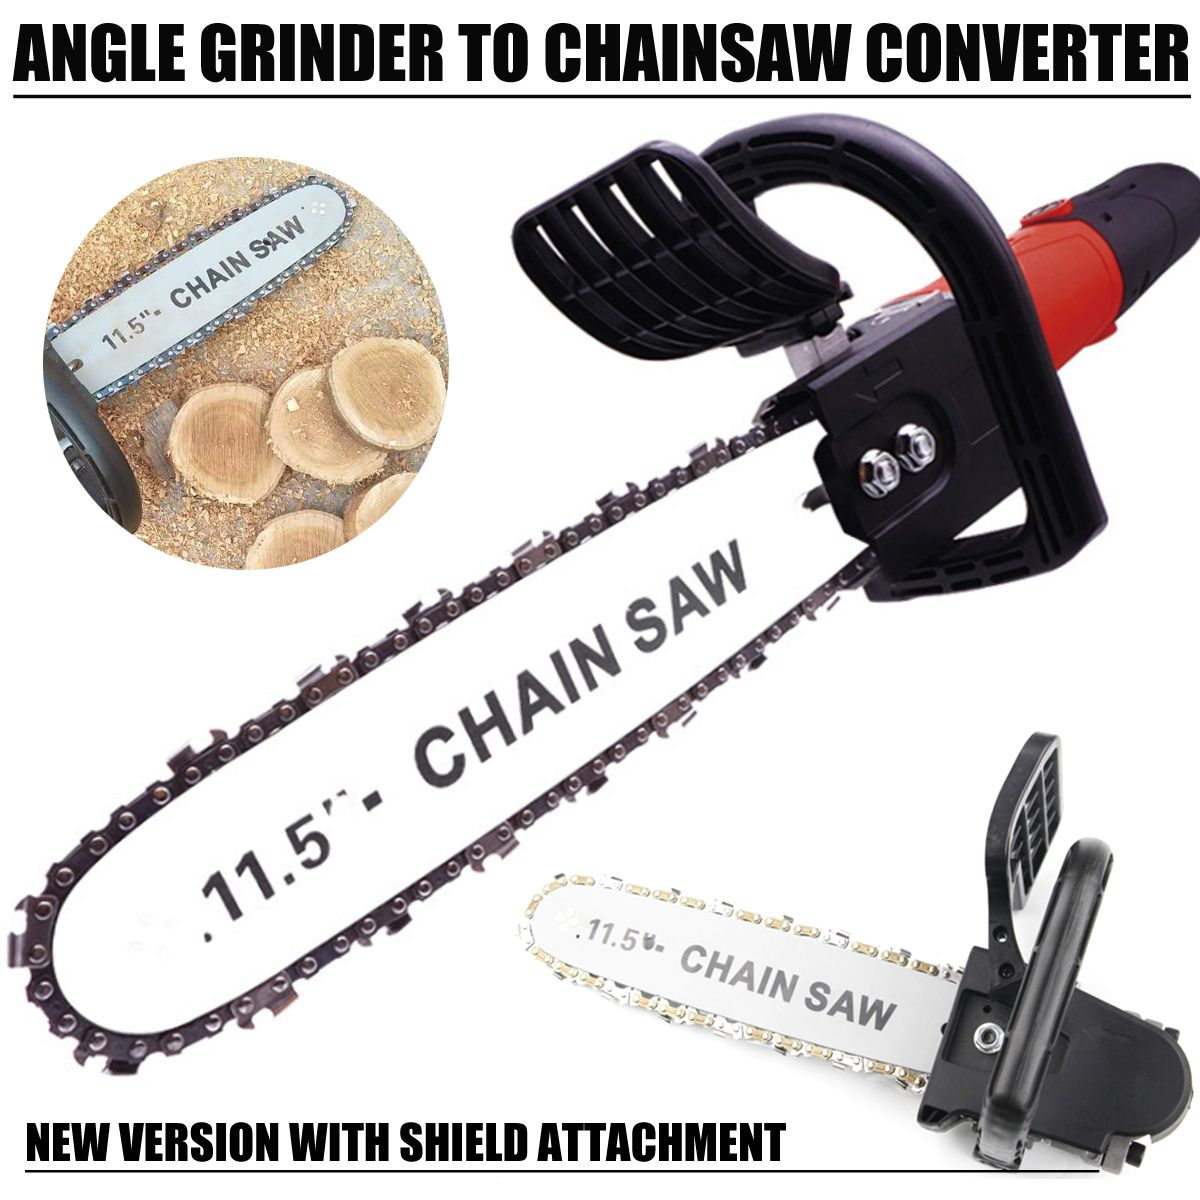 DIY Electric Saw 11.5 Inch Chainsaw Bracket Set High Carbon Steel For Electric Angle Grinder To Chain Saw Woodworking Power <font><b>Tool</b></font>